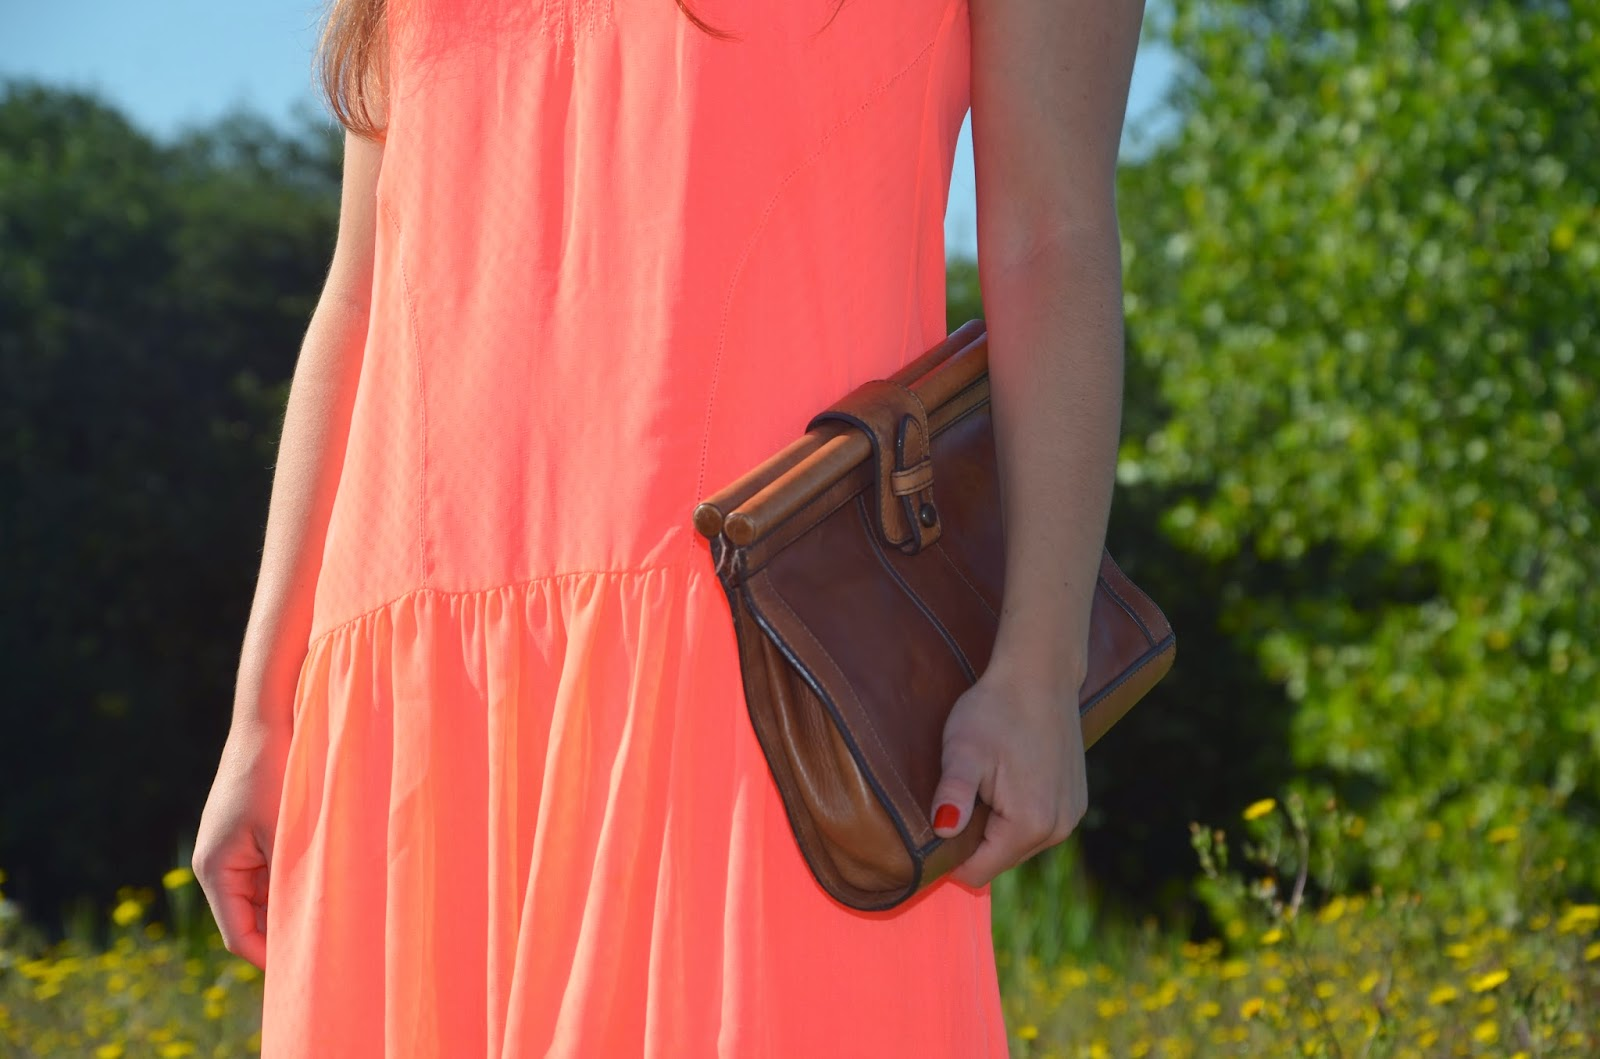 neon dolce vita drop waist dress + fossil clutch